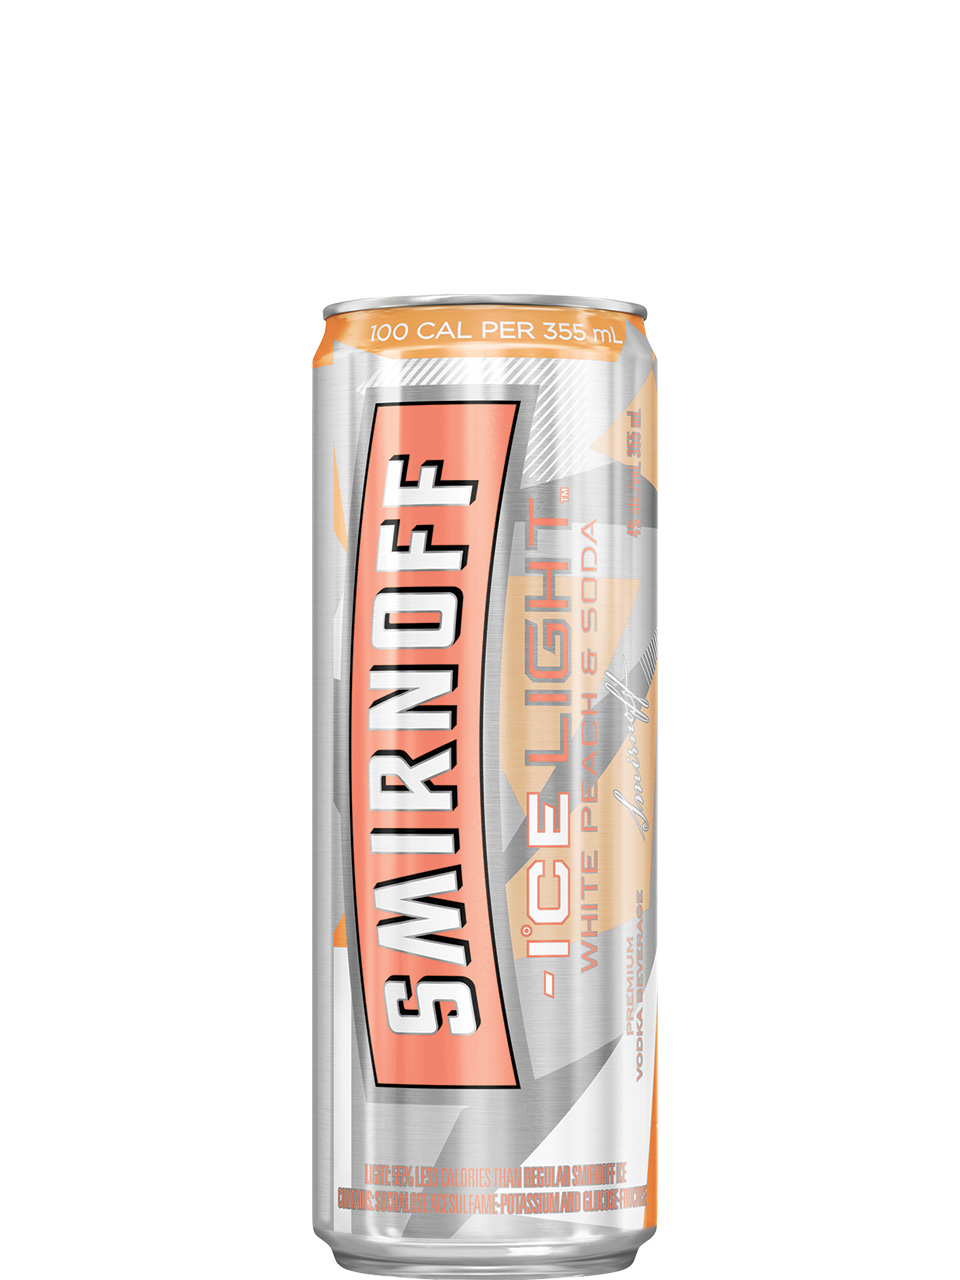 Smirnoff Ice Light White Peach & Soda 4 Pack Cans